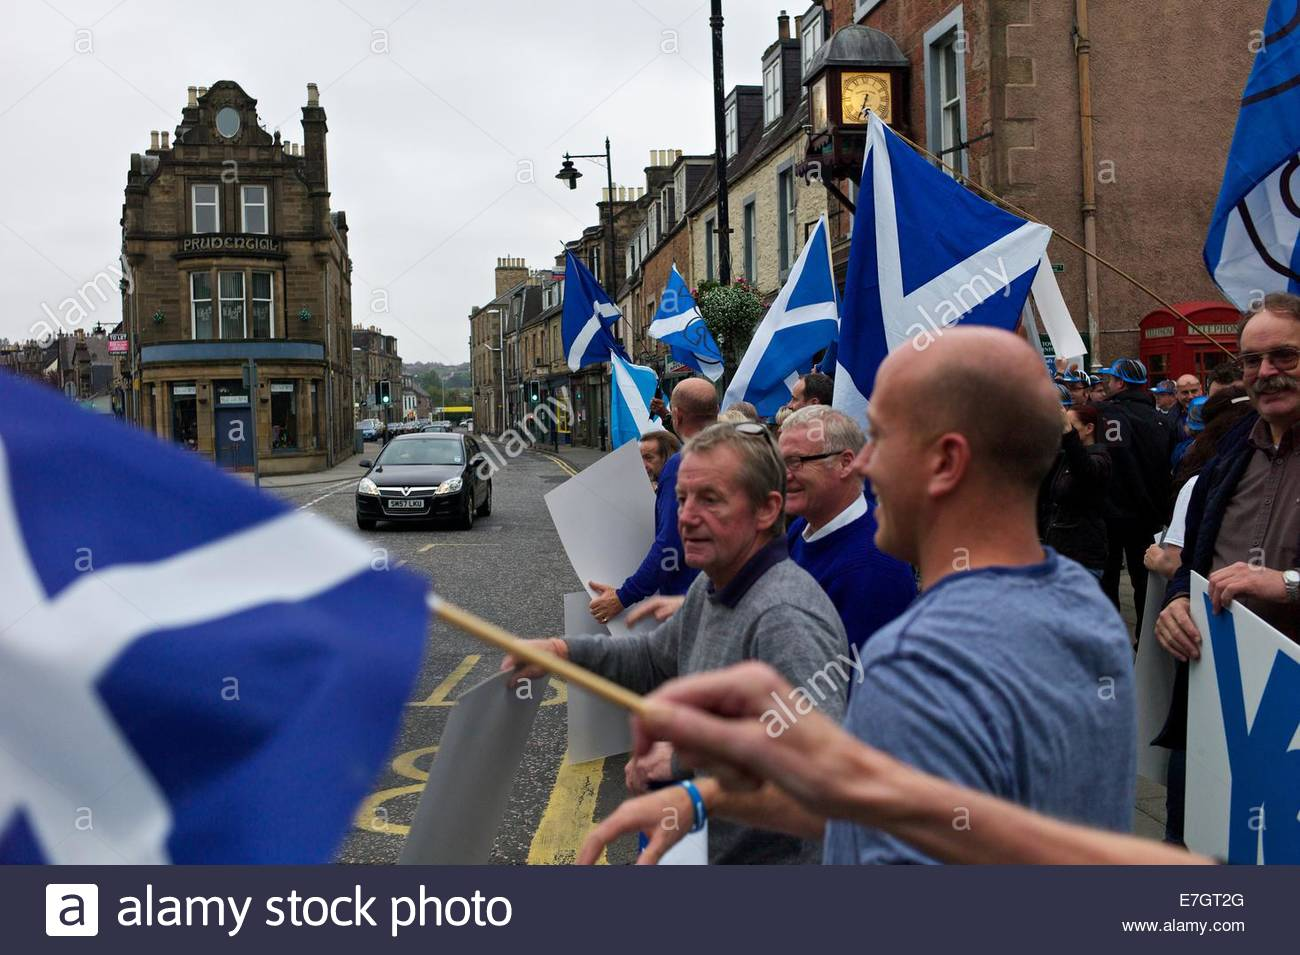 Hawick, Scottish Borders, UK, 17th September 2014 - 'Yes' campaigners encourage motorists to beep their - Stock Image